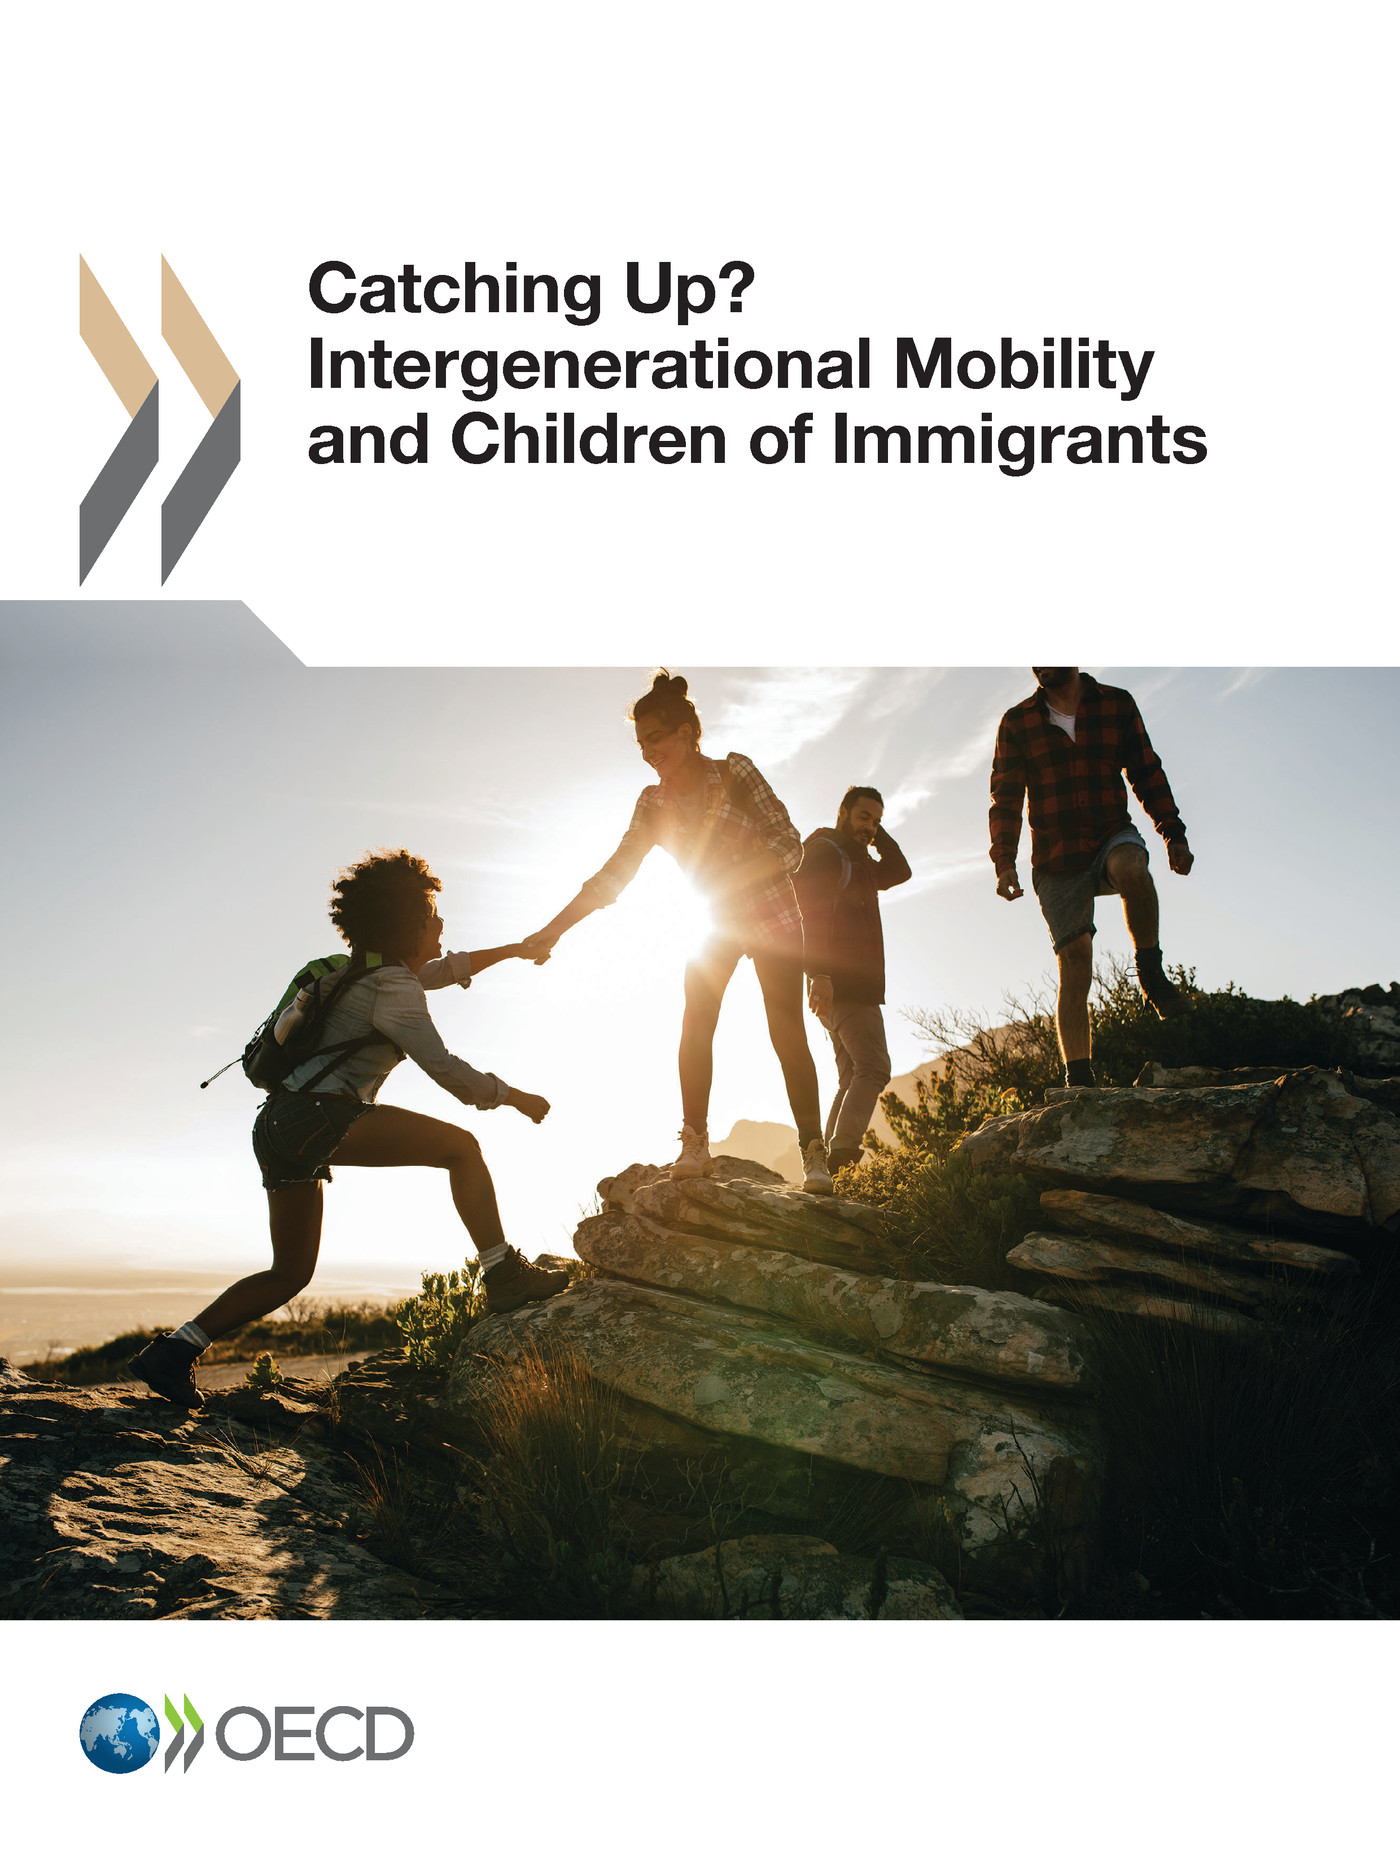 Catching Up? Intergenerational Mobility and Children of Immigrants De  Collectif - OCDE / OECD